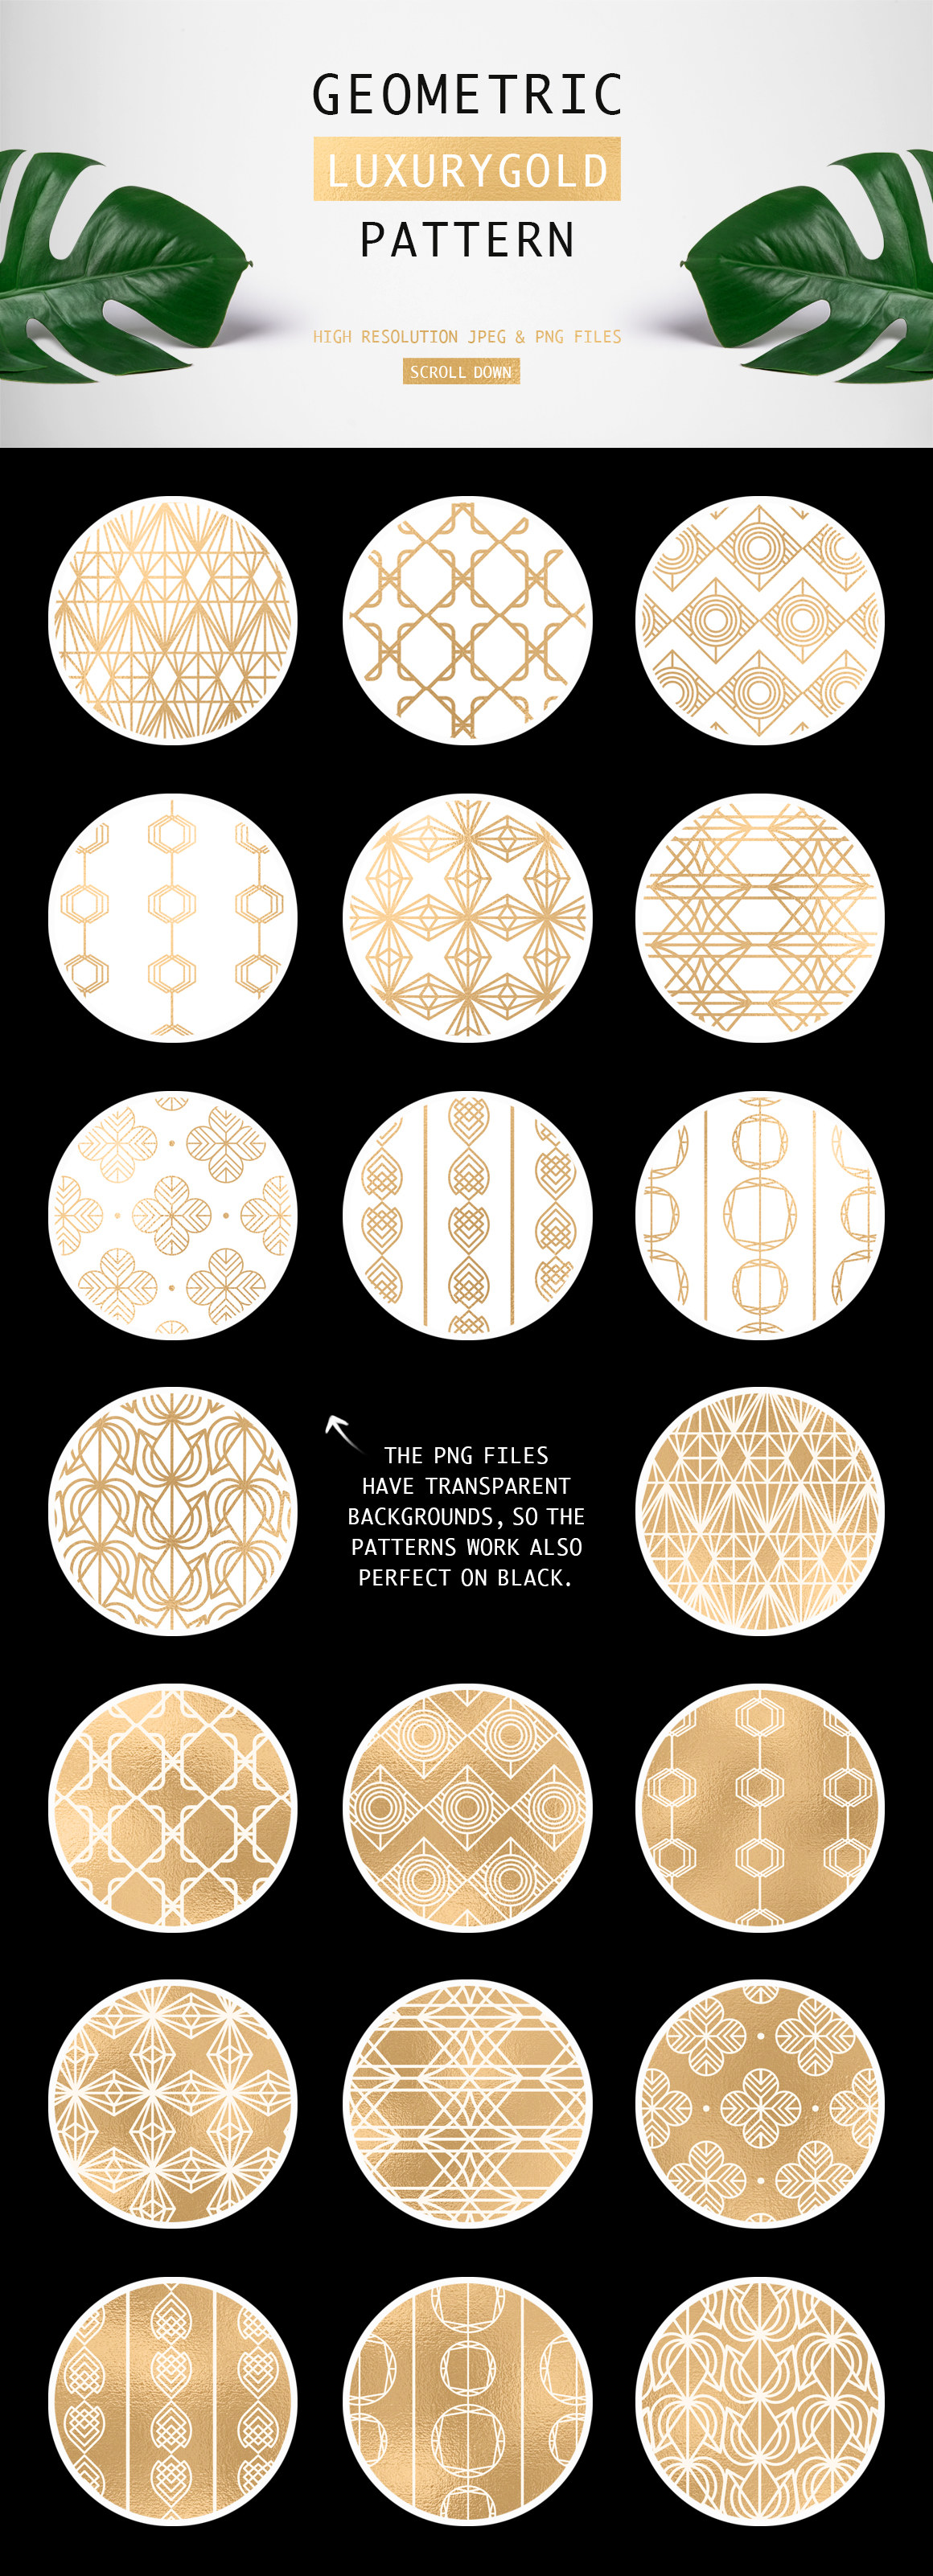 Geometric Luxurygold Pattern example image 5